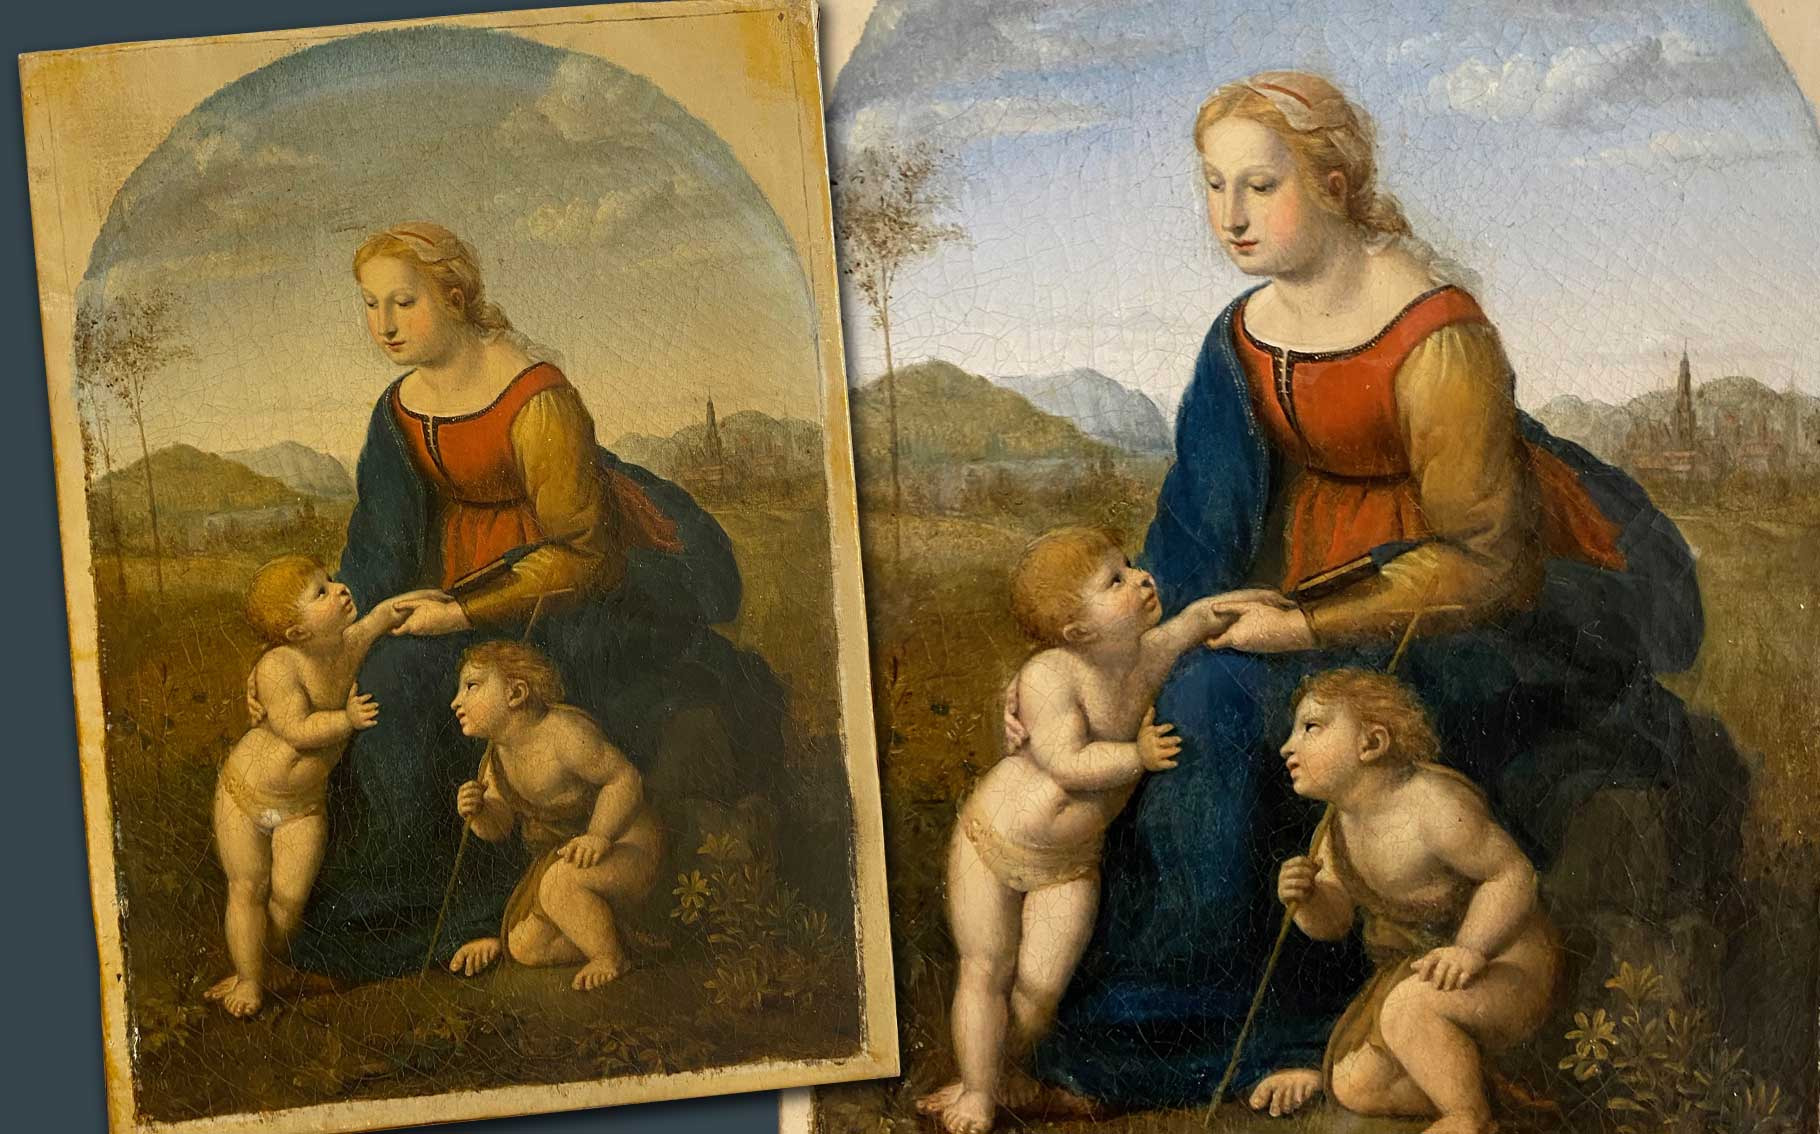 Before and after image for giving restoration as a gift